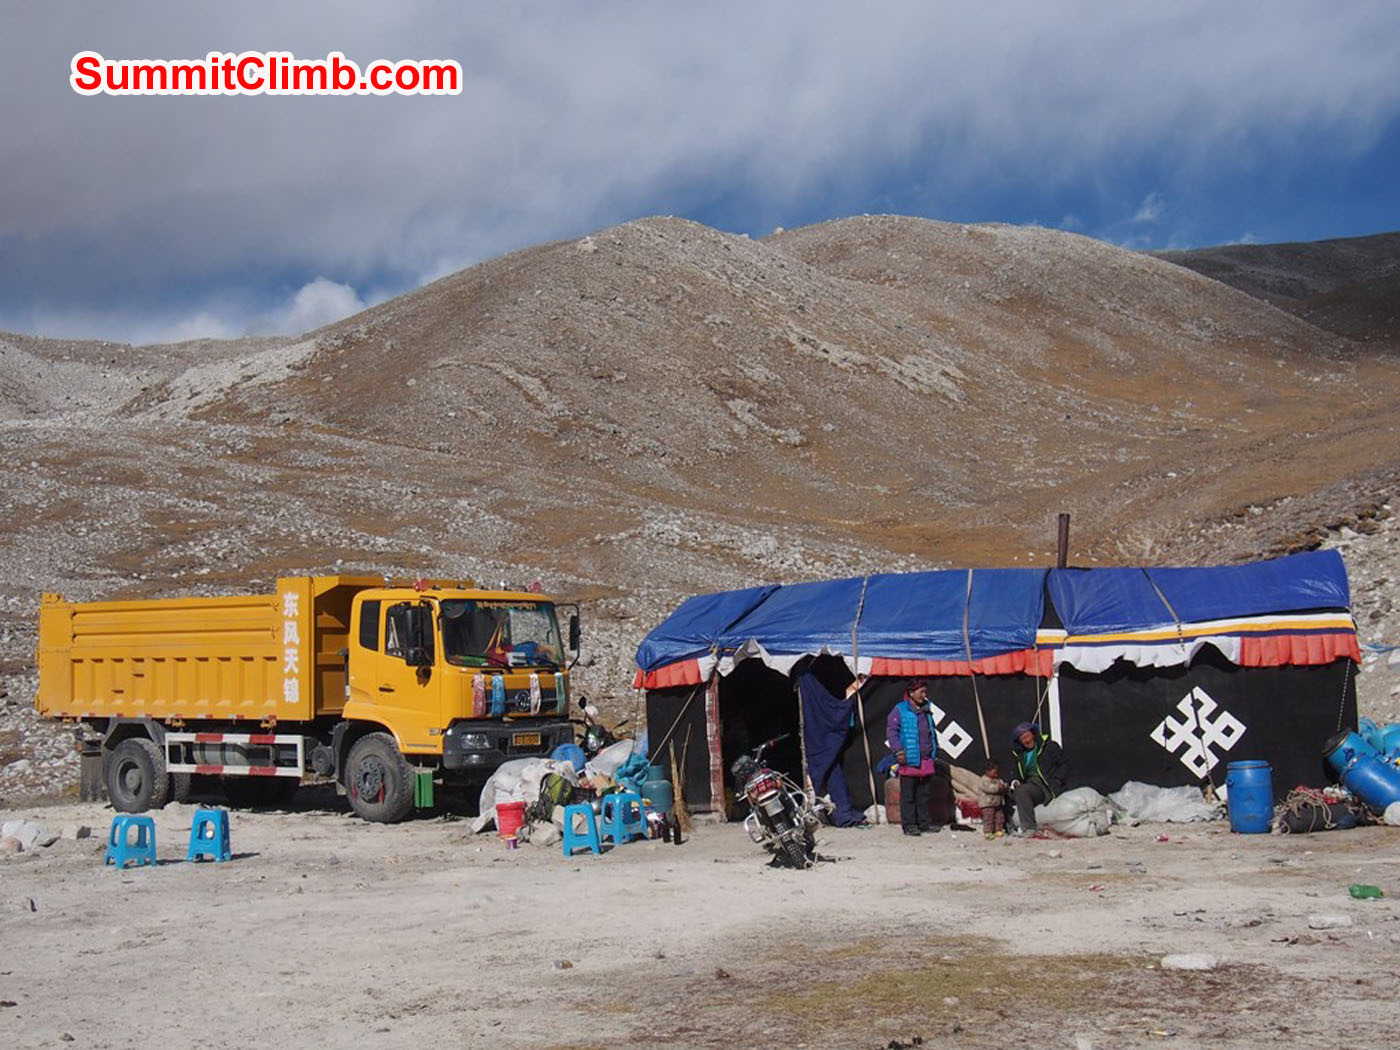 Interim camp while descending. A teahouse tent and and truck. Alan Barclay Photo